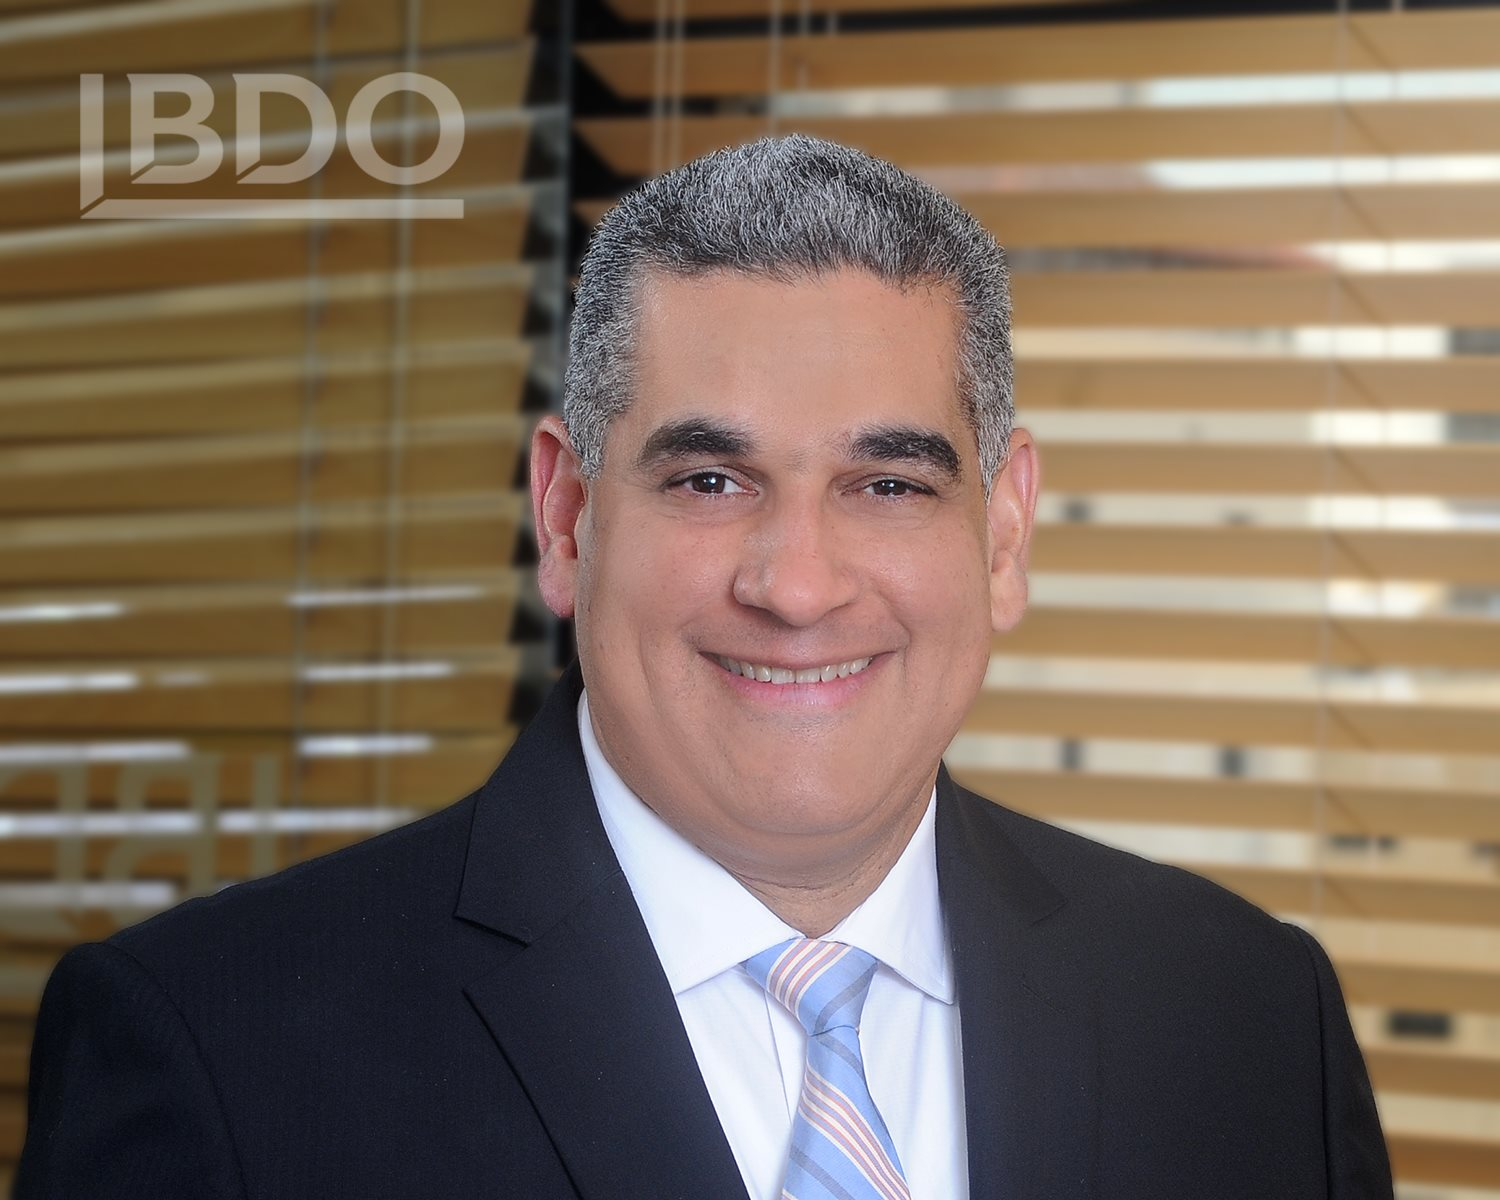 Carlos Alberto Ortega, Managing Partner, e International Liaison Partner